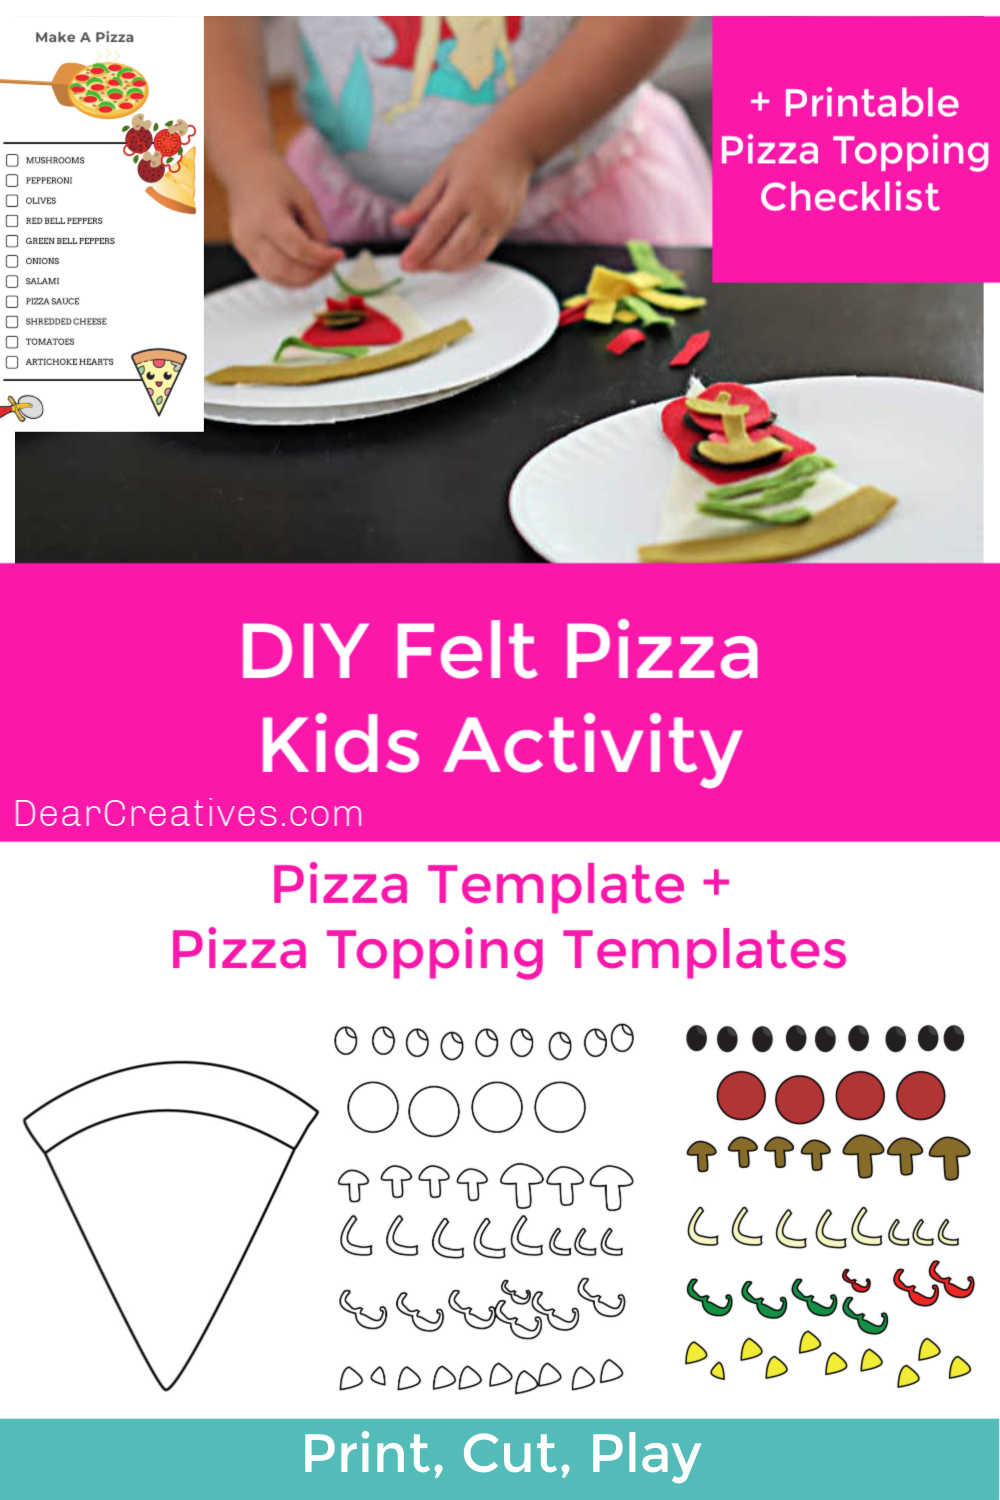 Make Play Pizza! Kids Activity -includes free printable templates for pizza, pizza topping and pizza making checklist. Plus, full instructions. Print, cut, play, learn - have fun with the kids today! DearCreatives.com